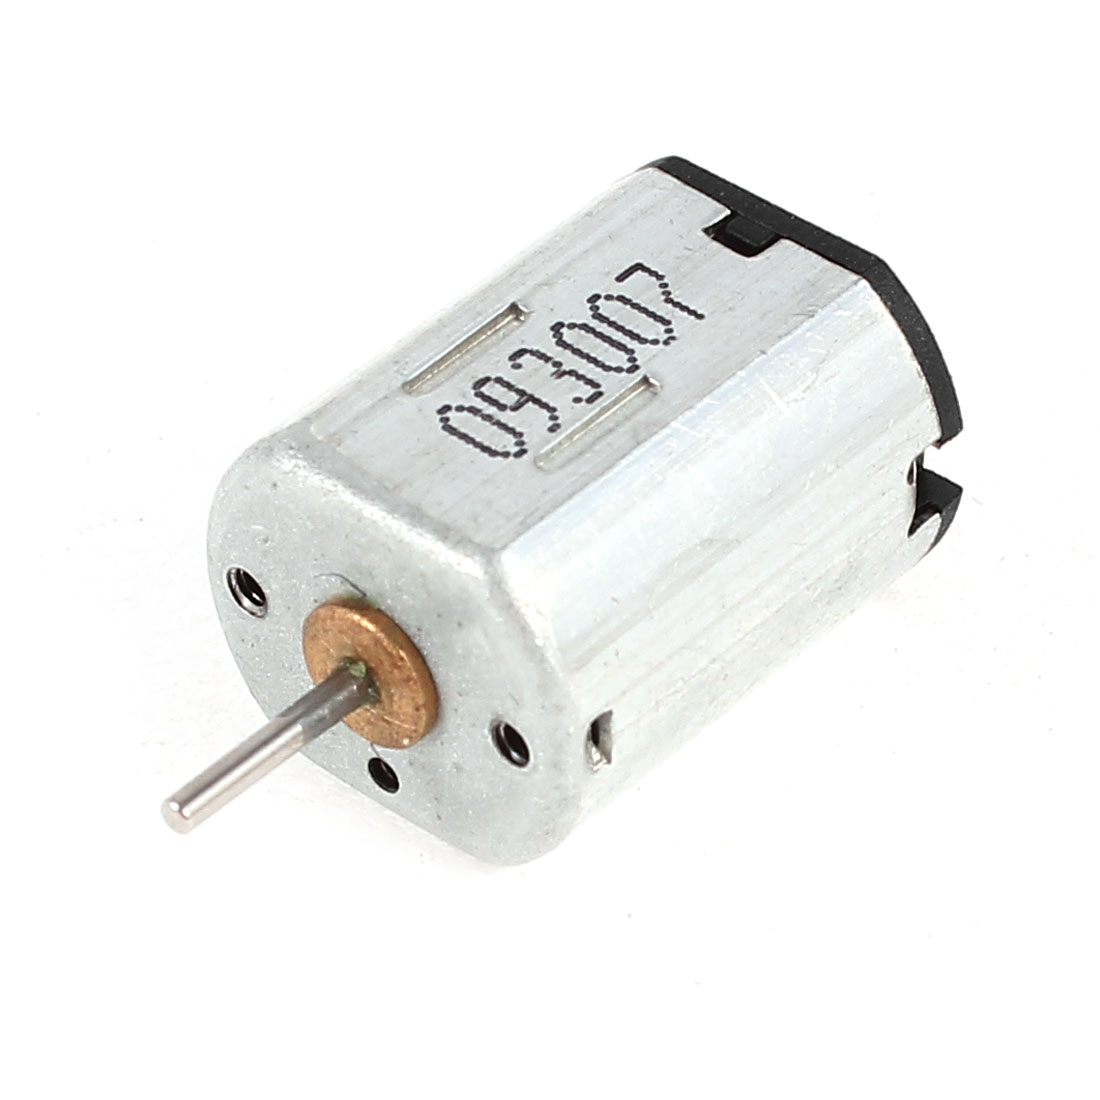 RC Helicopter Aircraft Metal Shell Micro Motor DC 3V 4000RPM N20 15mmx12mmx10mm